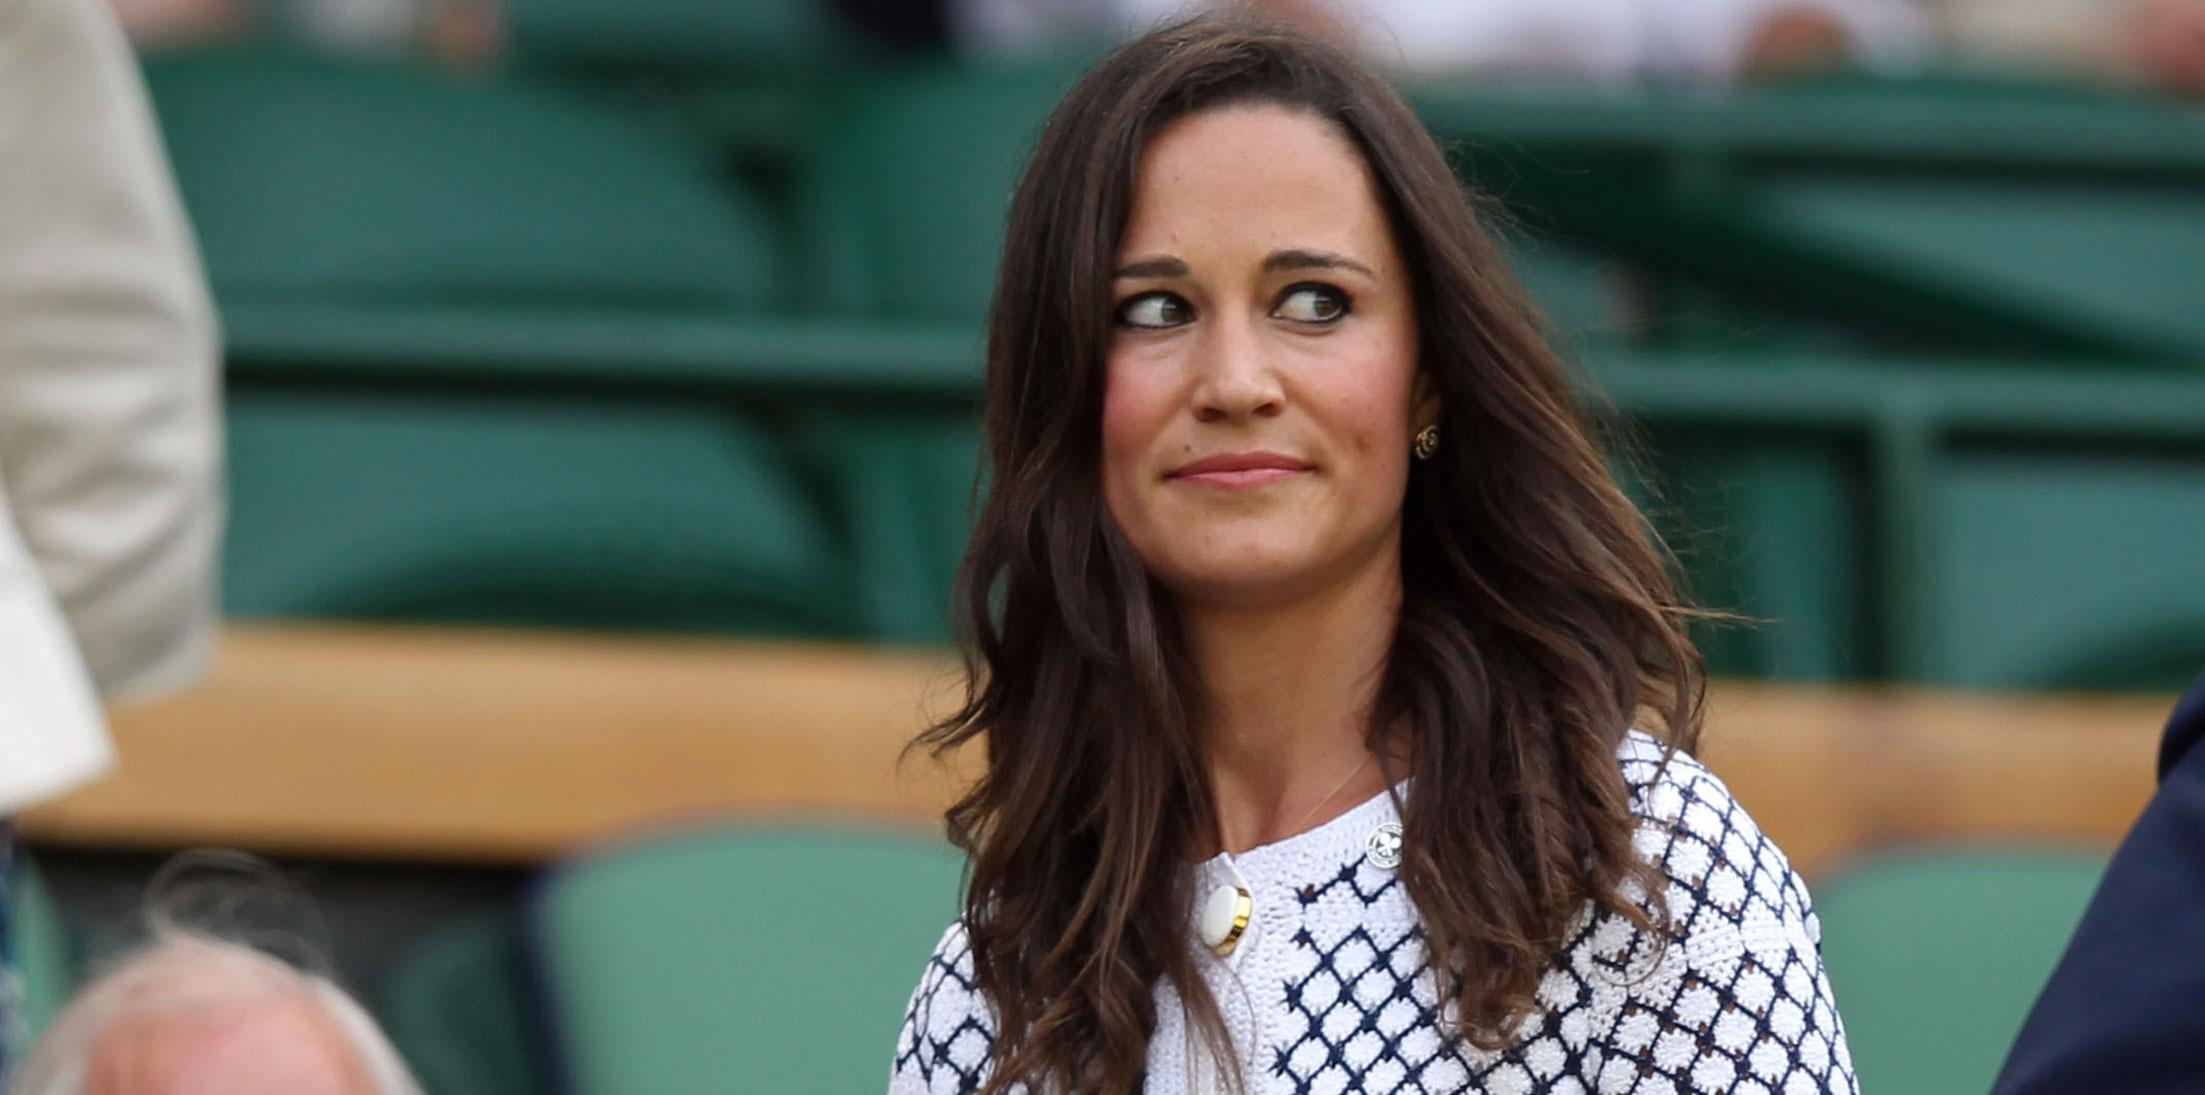 Pippa middleton losing weight wedding 1